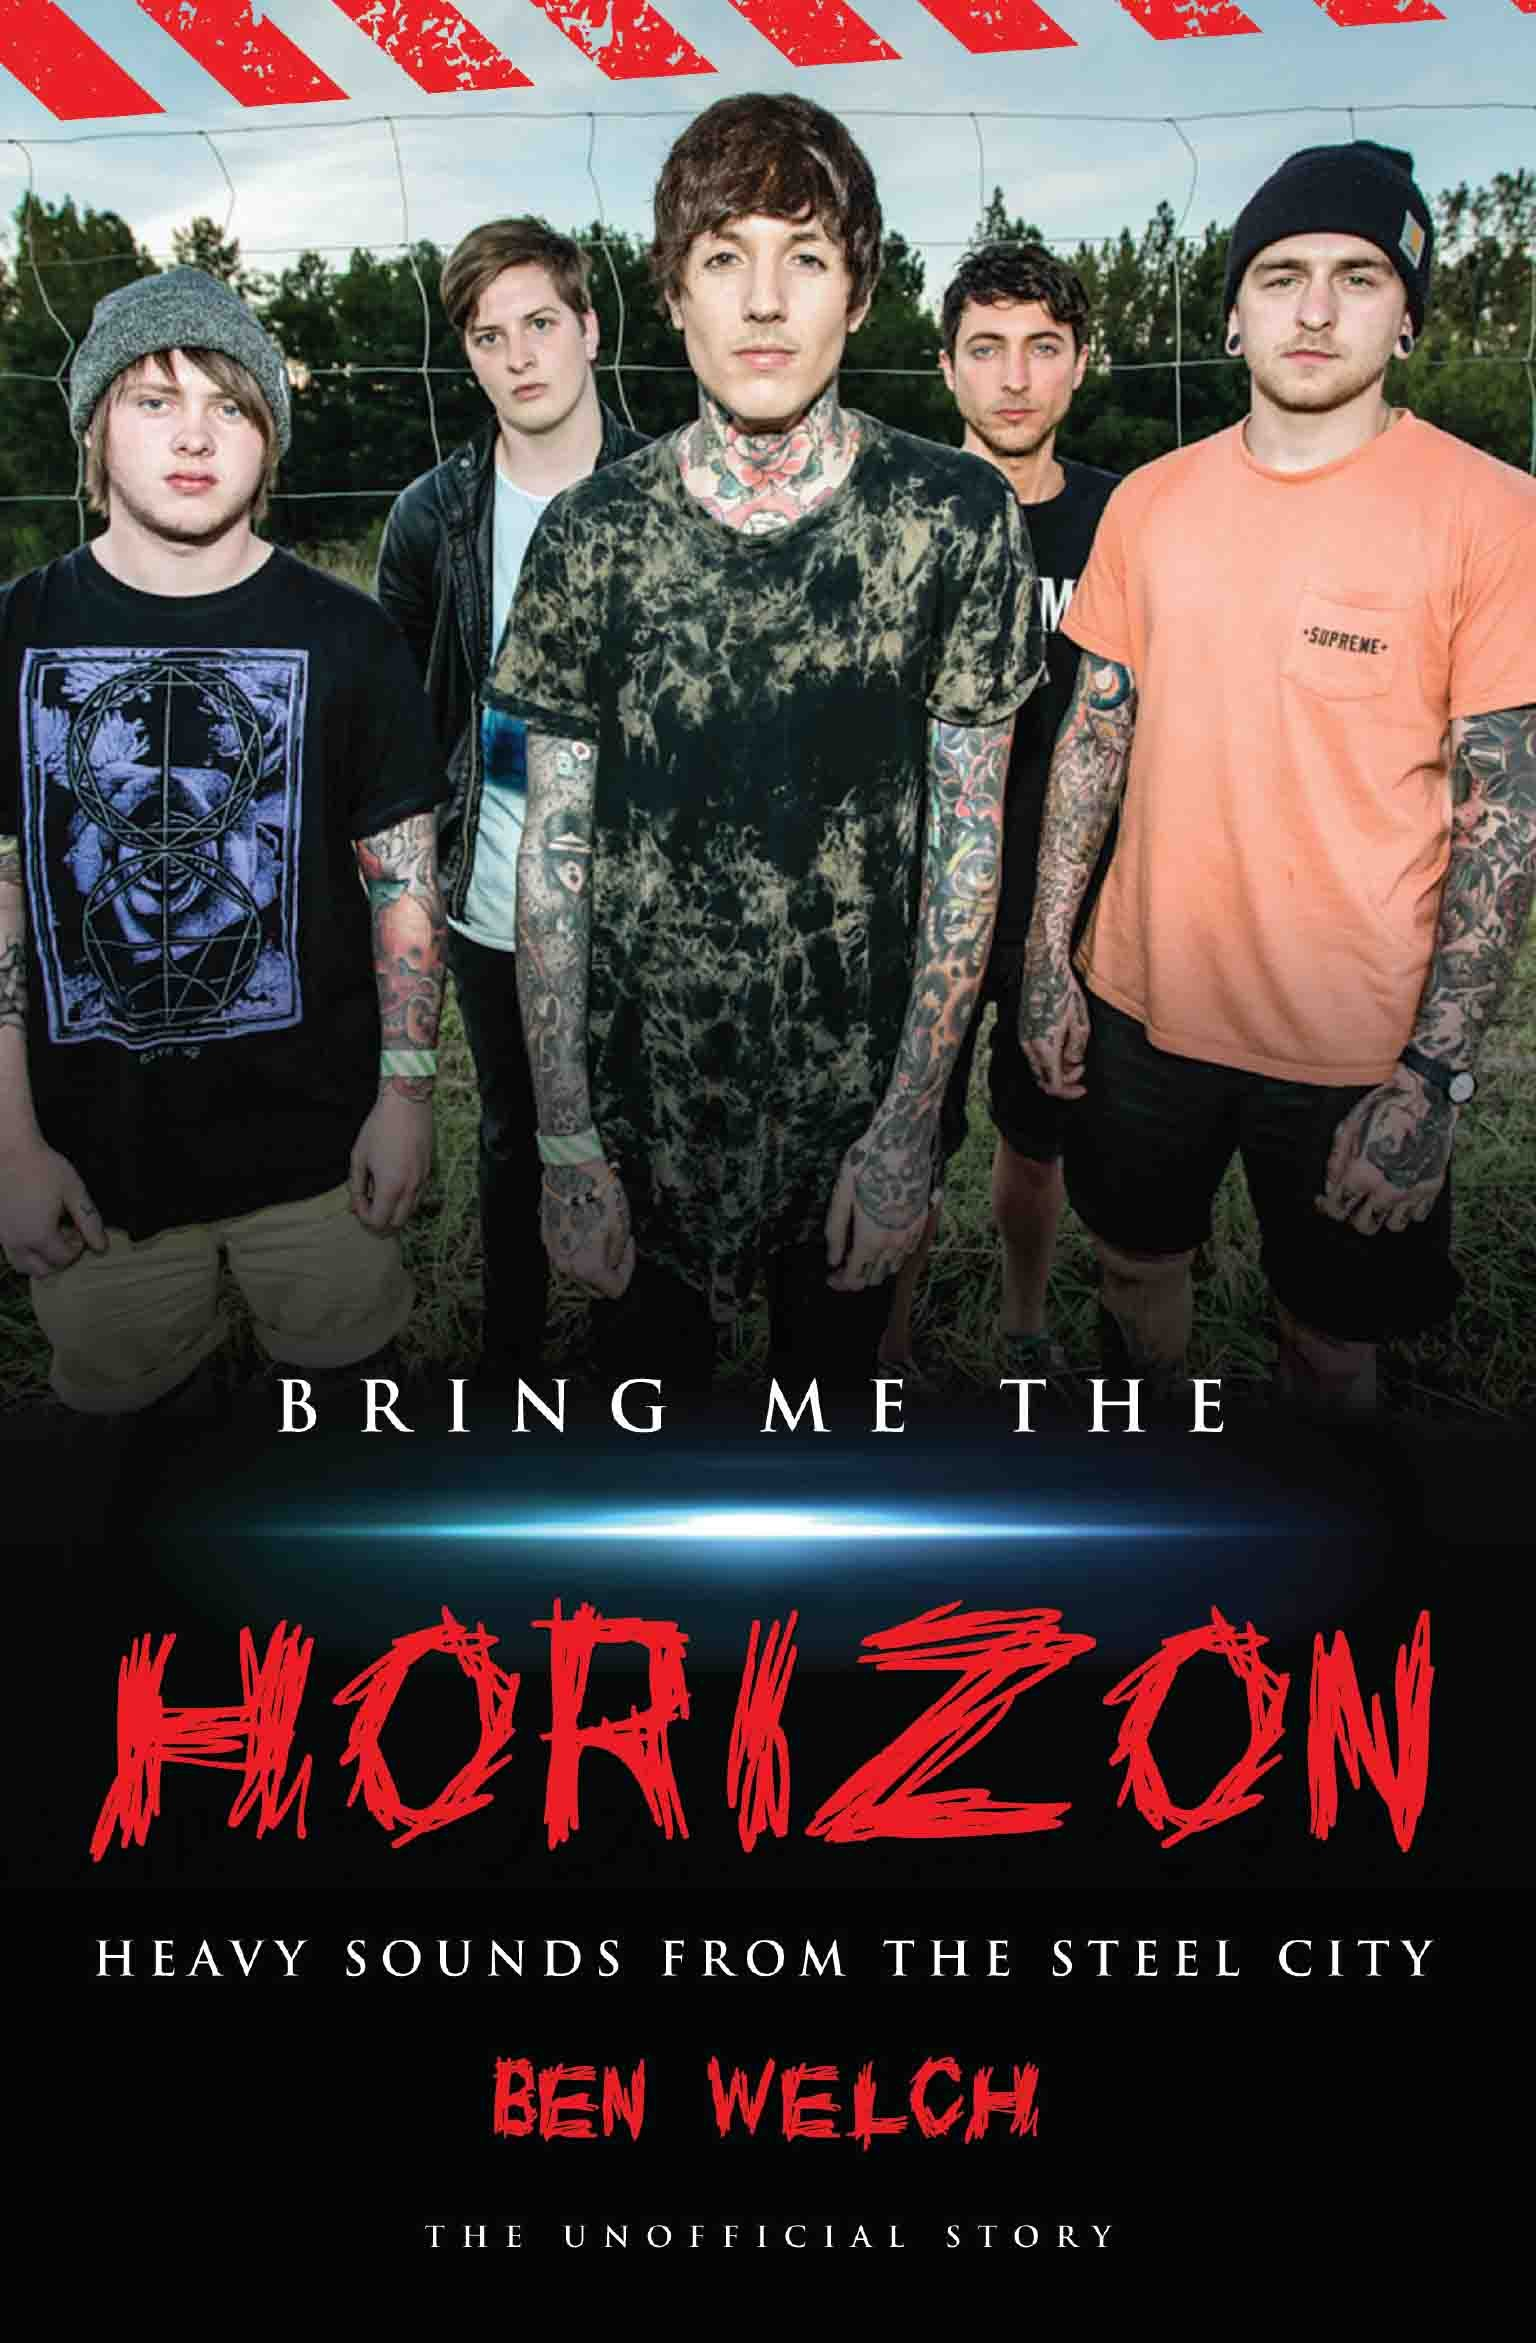 Bring Me the Horizon: Heavy Sounds from the Steel City Paperback – 7 Apr 2016